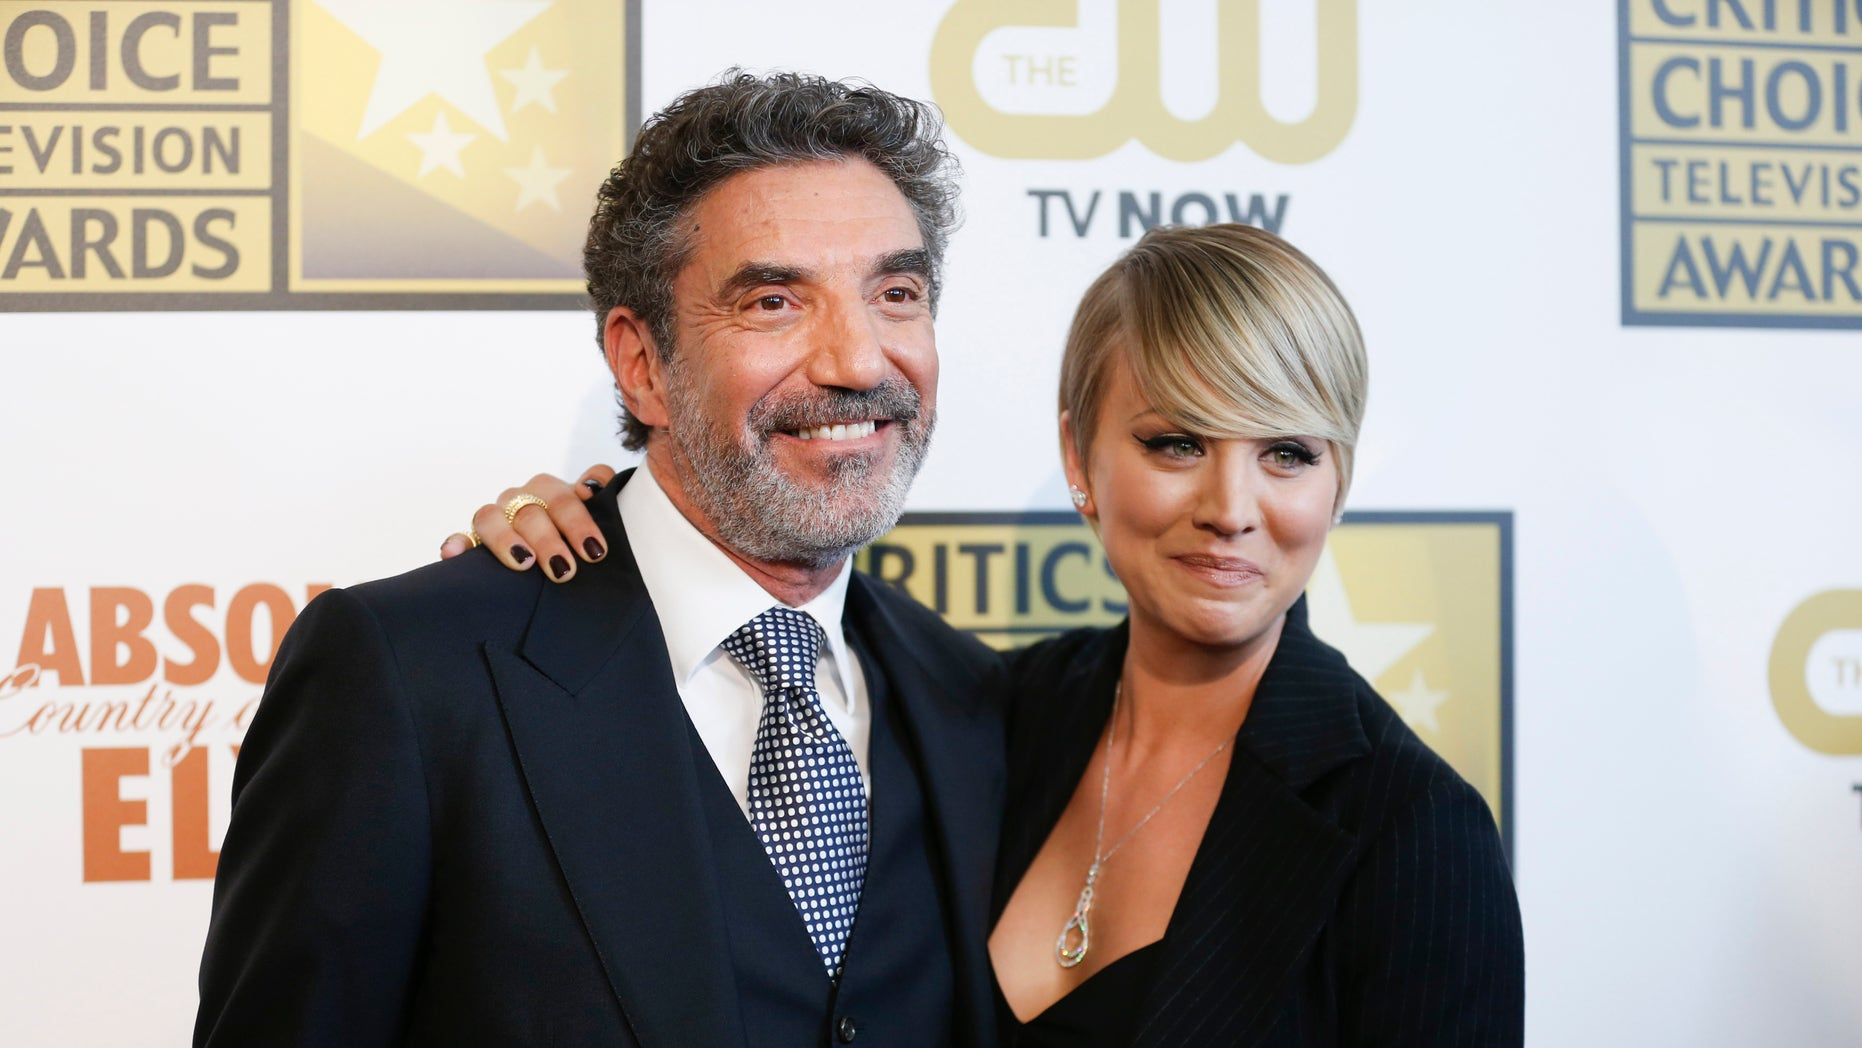 new products d59e9 5f6dc How Chuck Lorre went from 'failure' to 'Big Bang' success ...